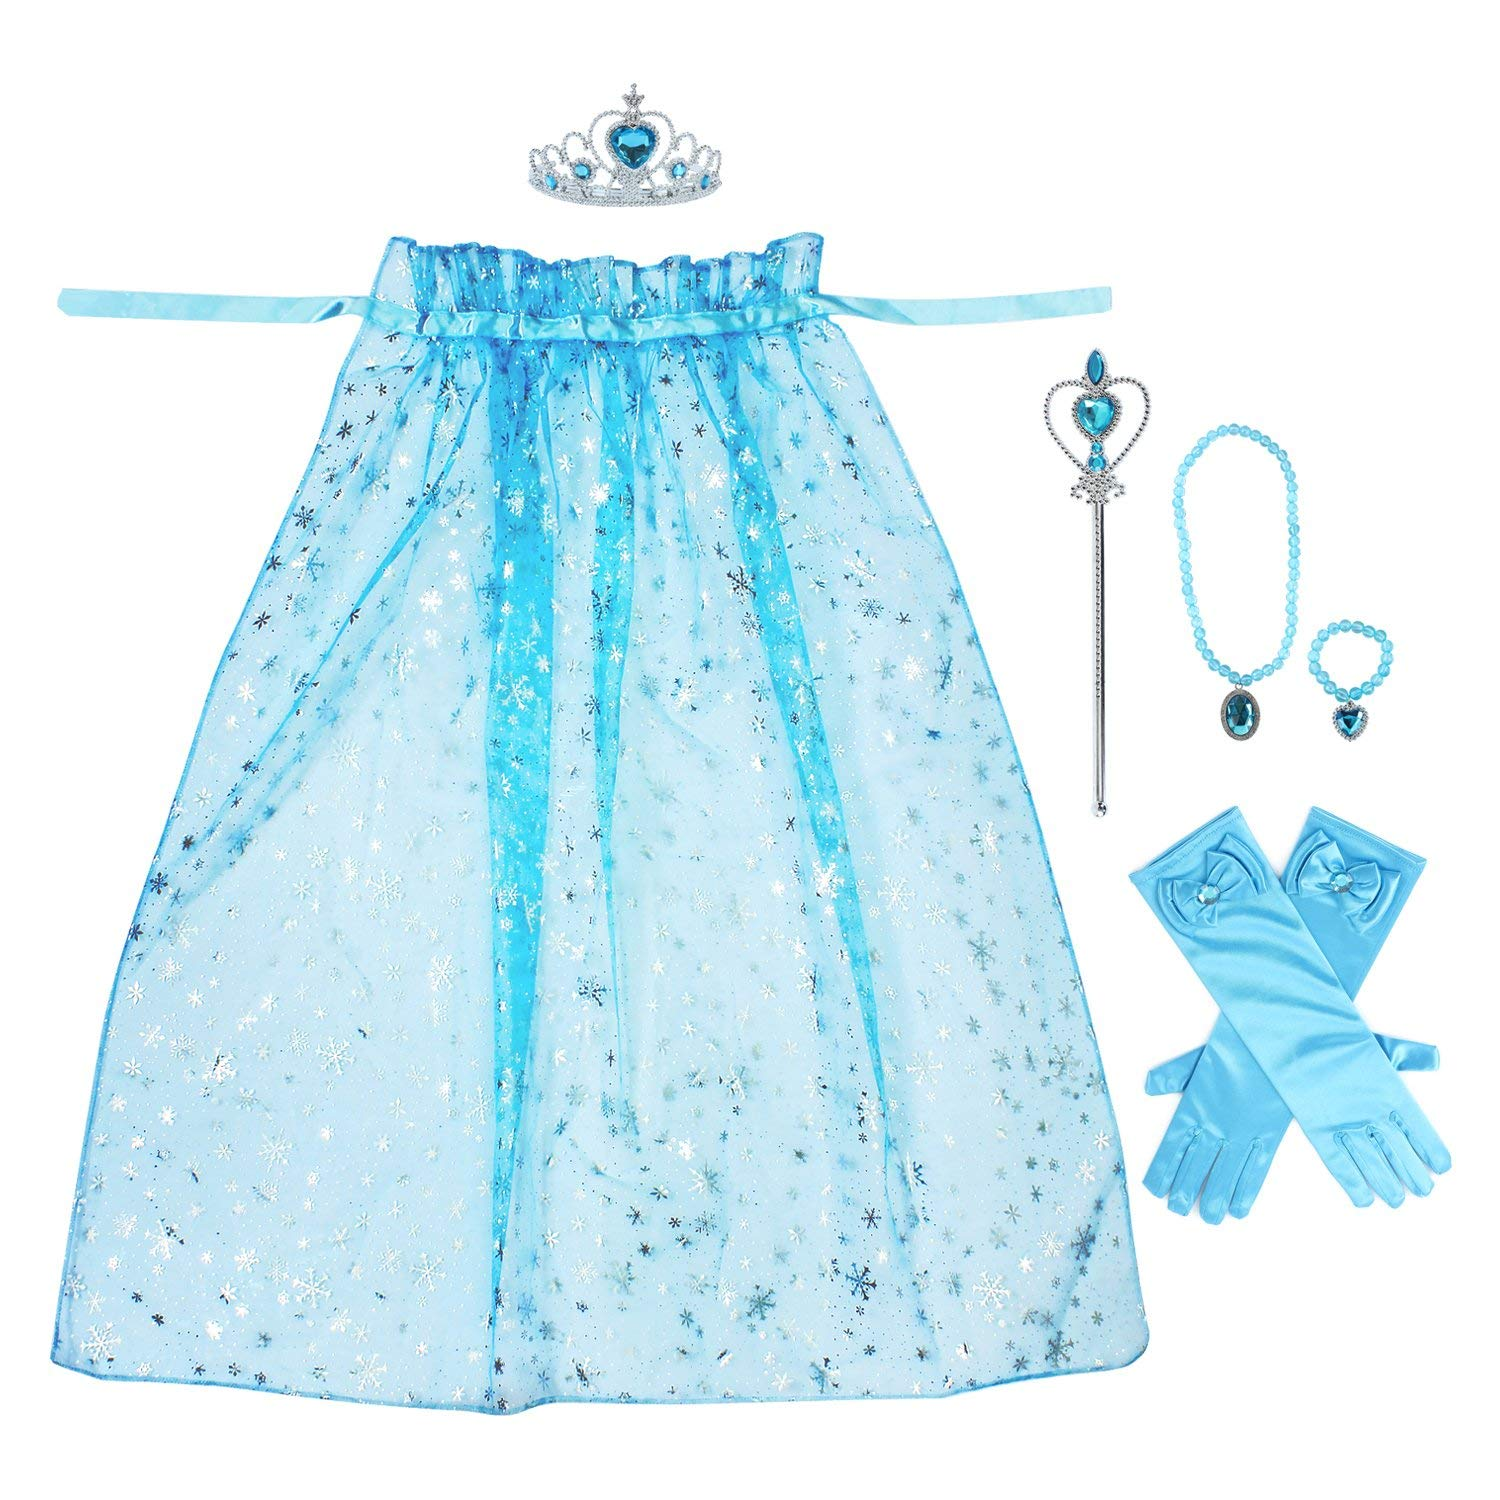 Toiijoy 7Pcs Girls Princess Snowflake Cape Costume Dress up Set with Princess Gloves,Tiara Crown,Wand and Accessories